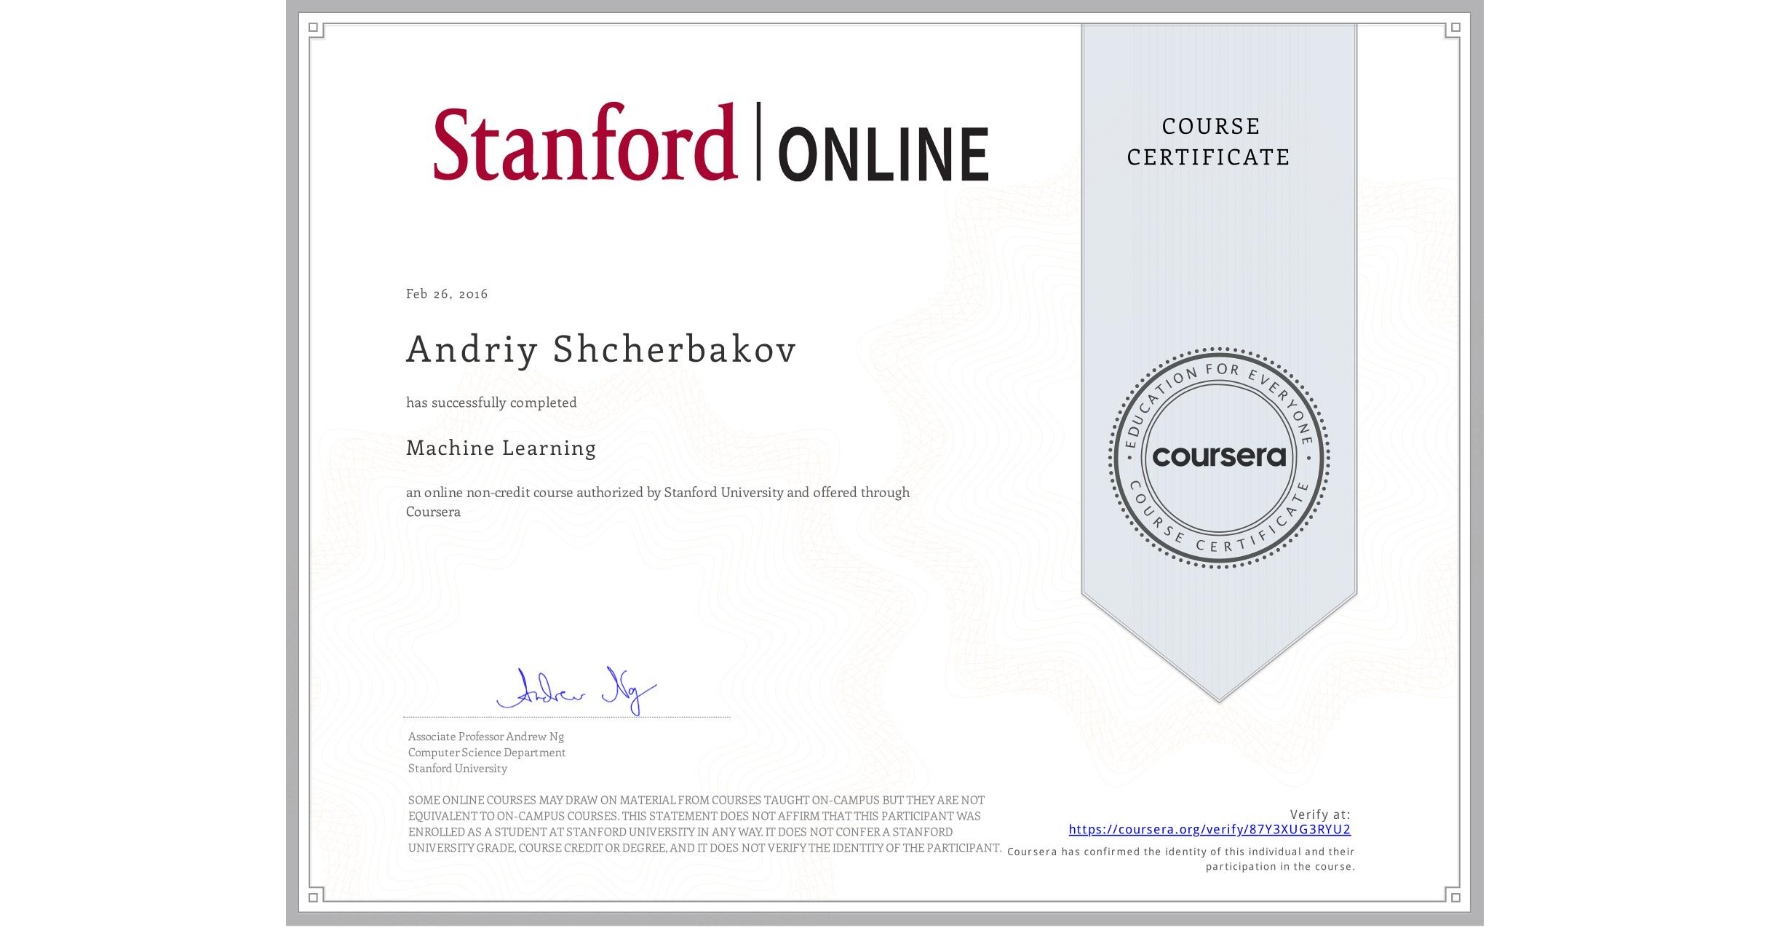 View certificate for Andriy Shcherbakov, Machine Learning, an online non-credit course authorized by Stanford University and offered through Coursera